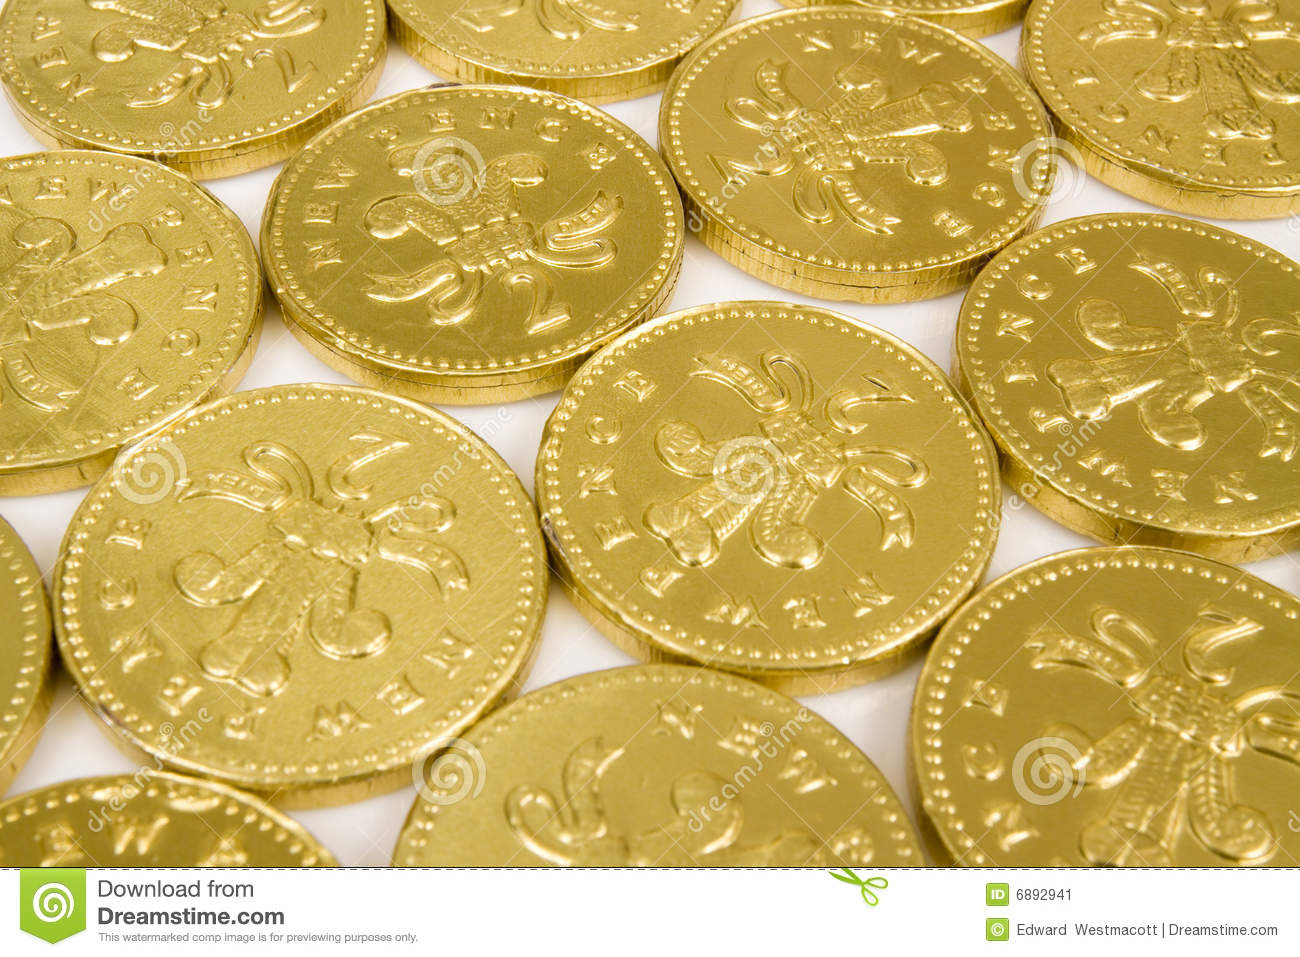 Homemade Chocolate Coins (Chanukah Gelt) - The Monday Box